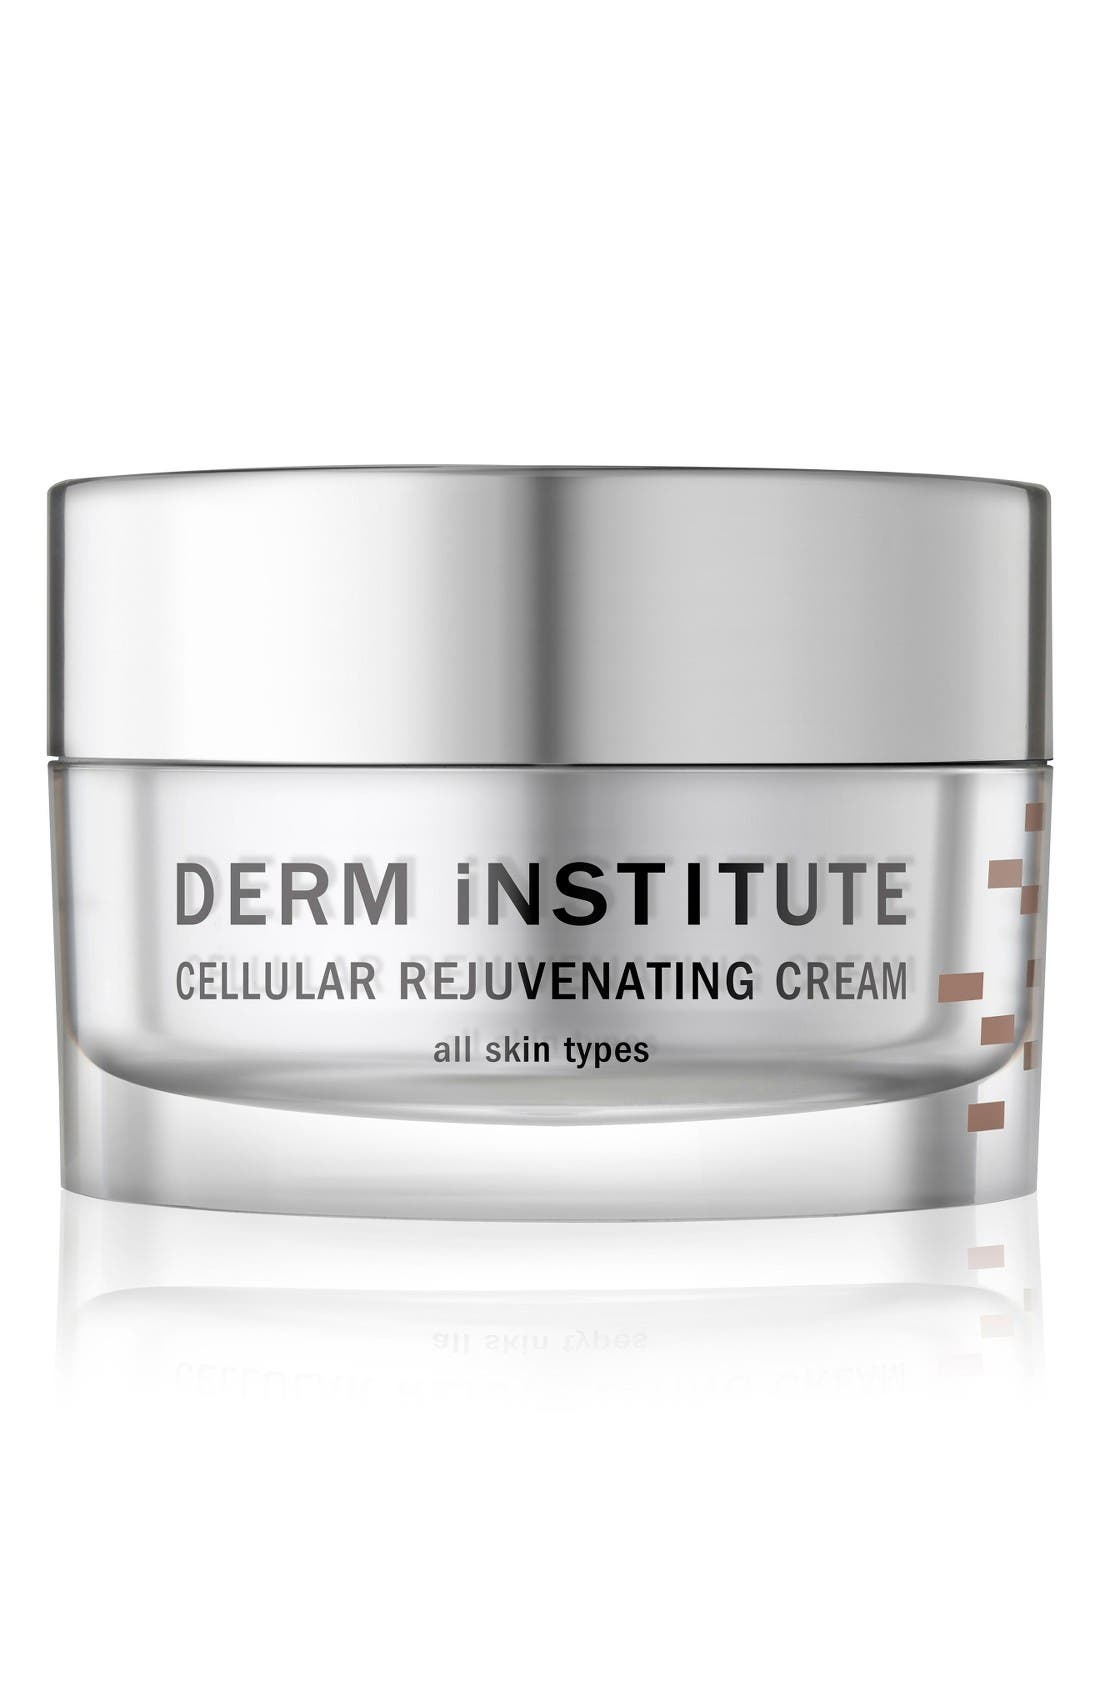 Alternate Image 1 Selected - SPACE.NK.apothecary Derm Institute Cellular Rejuvenating Cream